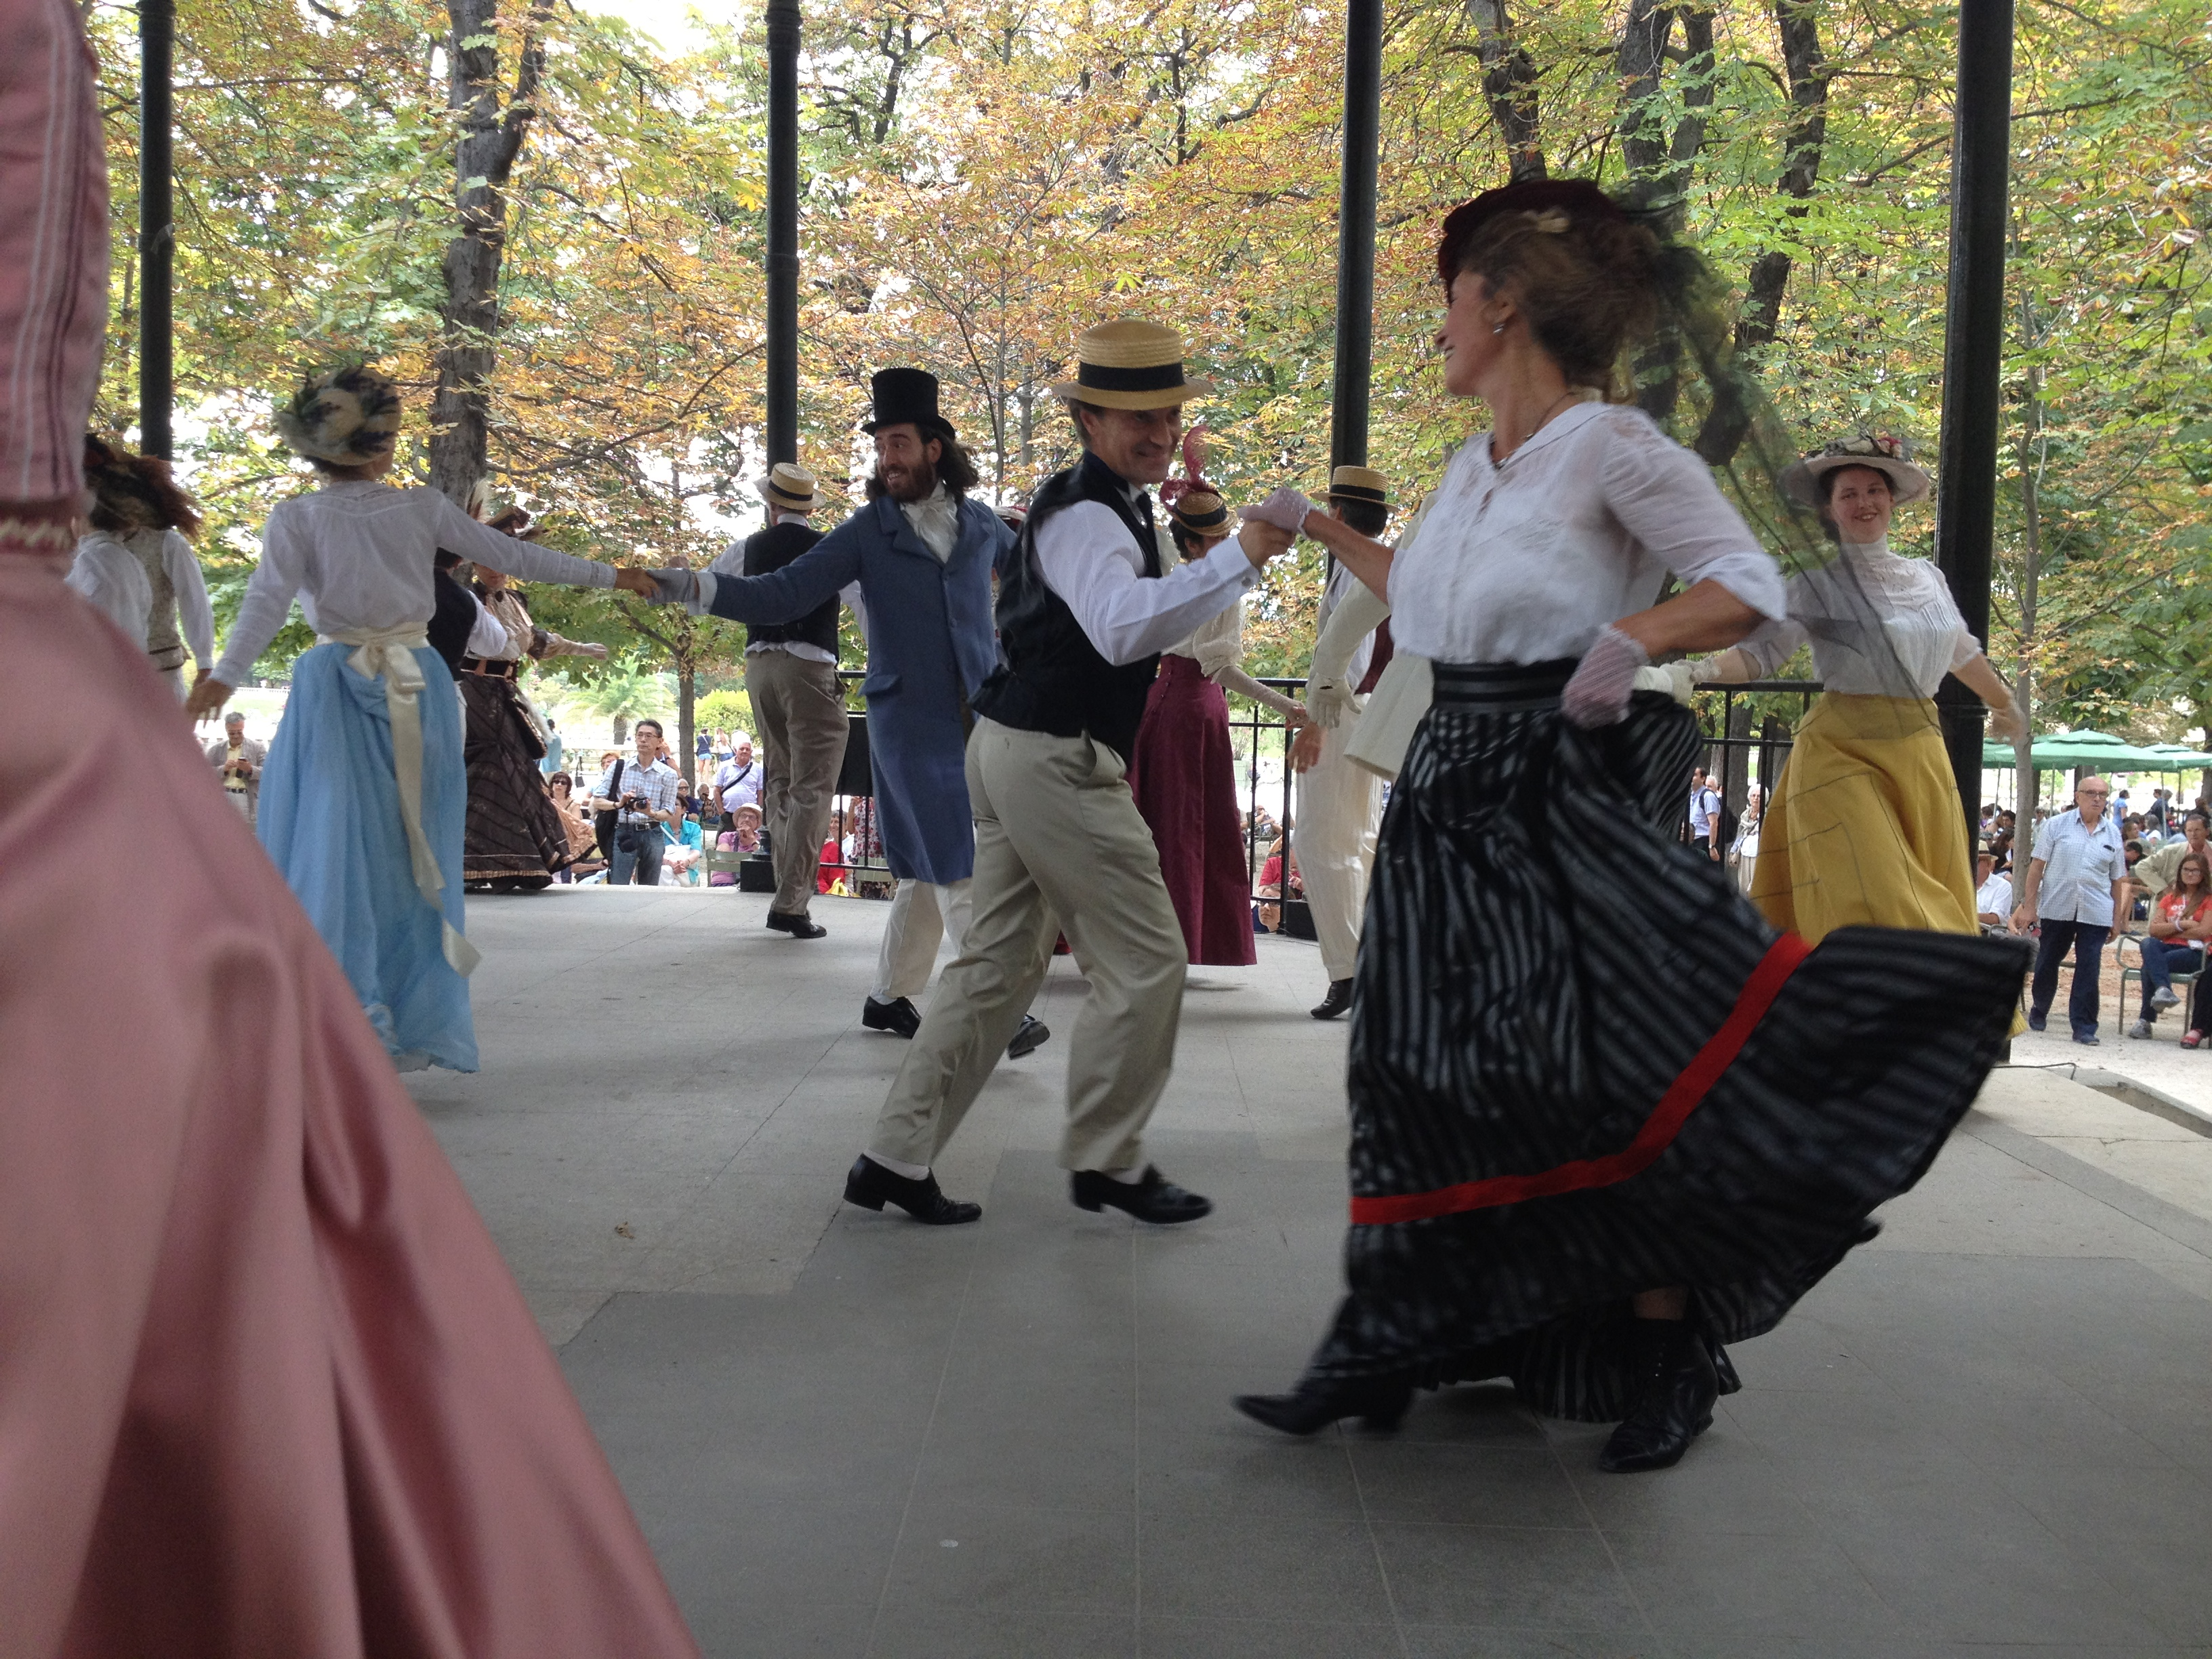 Dancing at the Jardin du Luxembourg, Paris